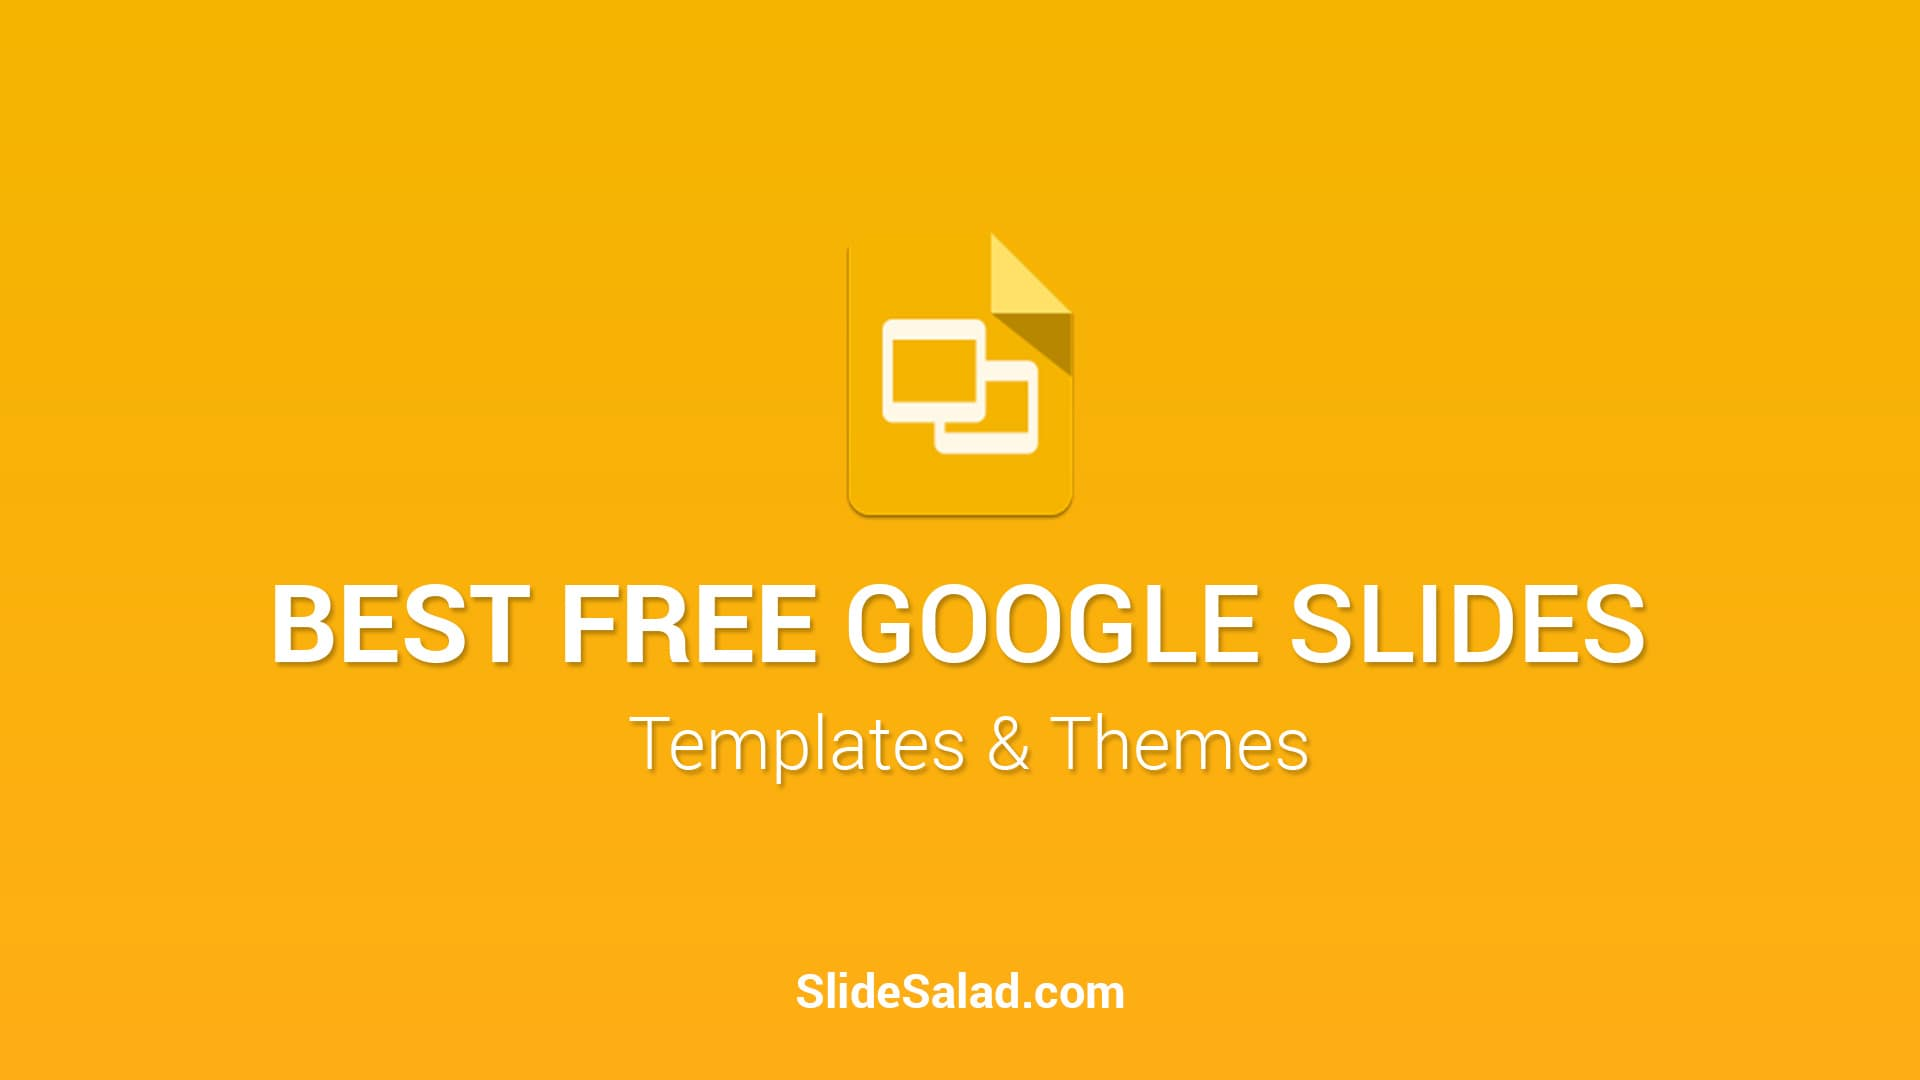 Best Free Google Slides Templates and Themes To Download – Top Free Themes for Google Slides for Multipurpose Business Presentation